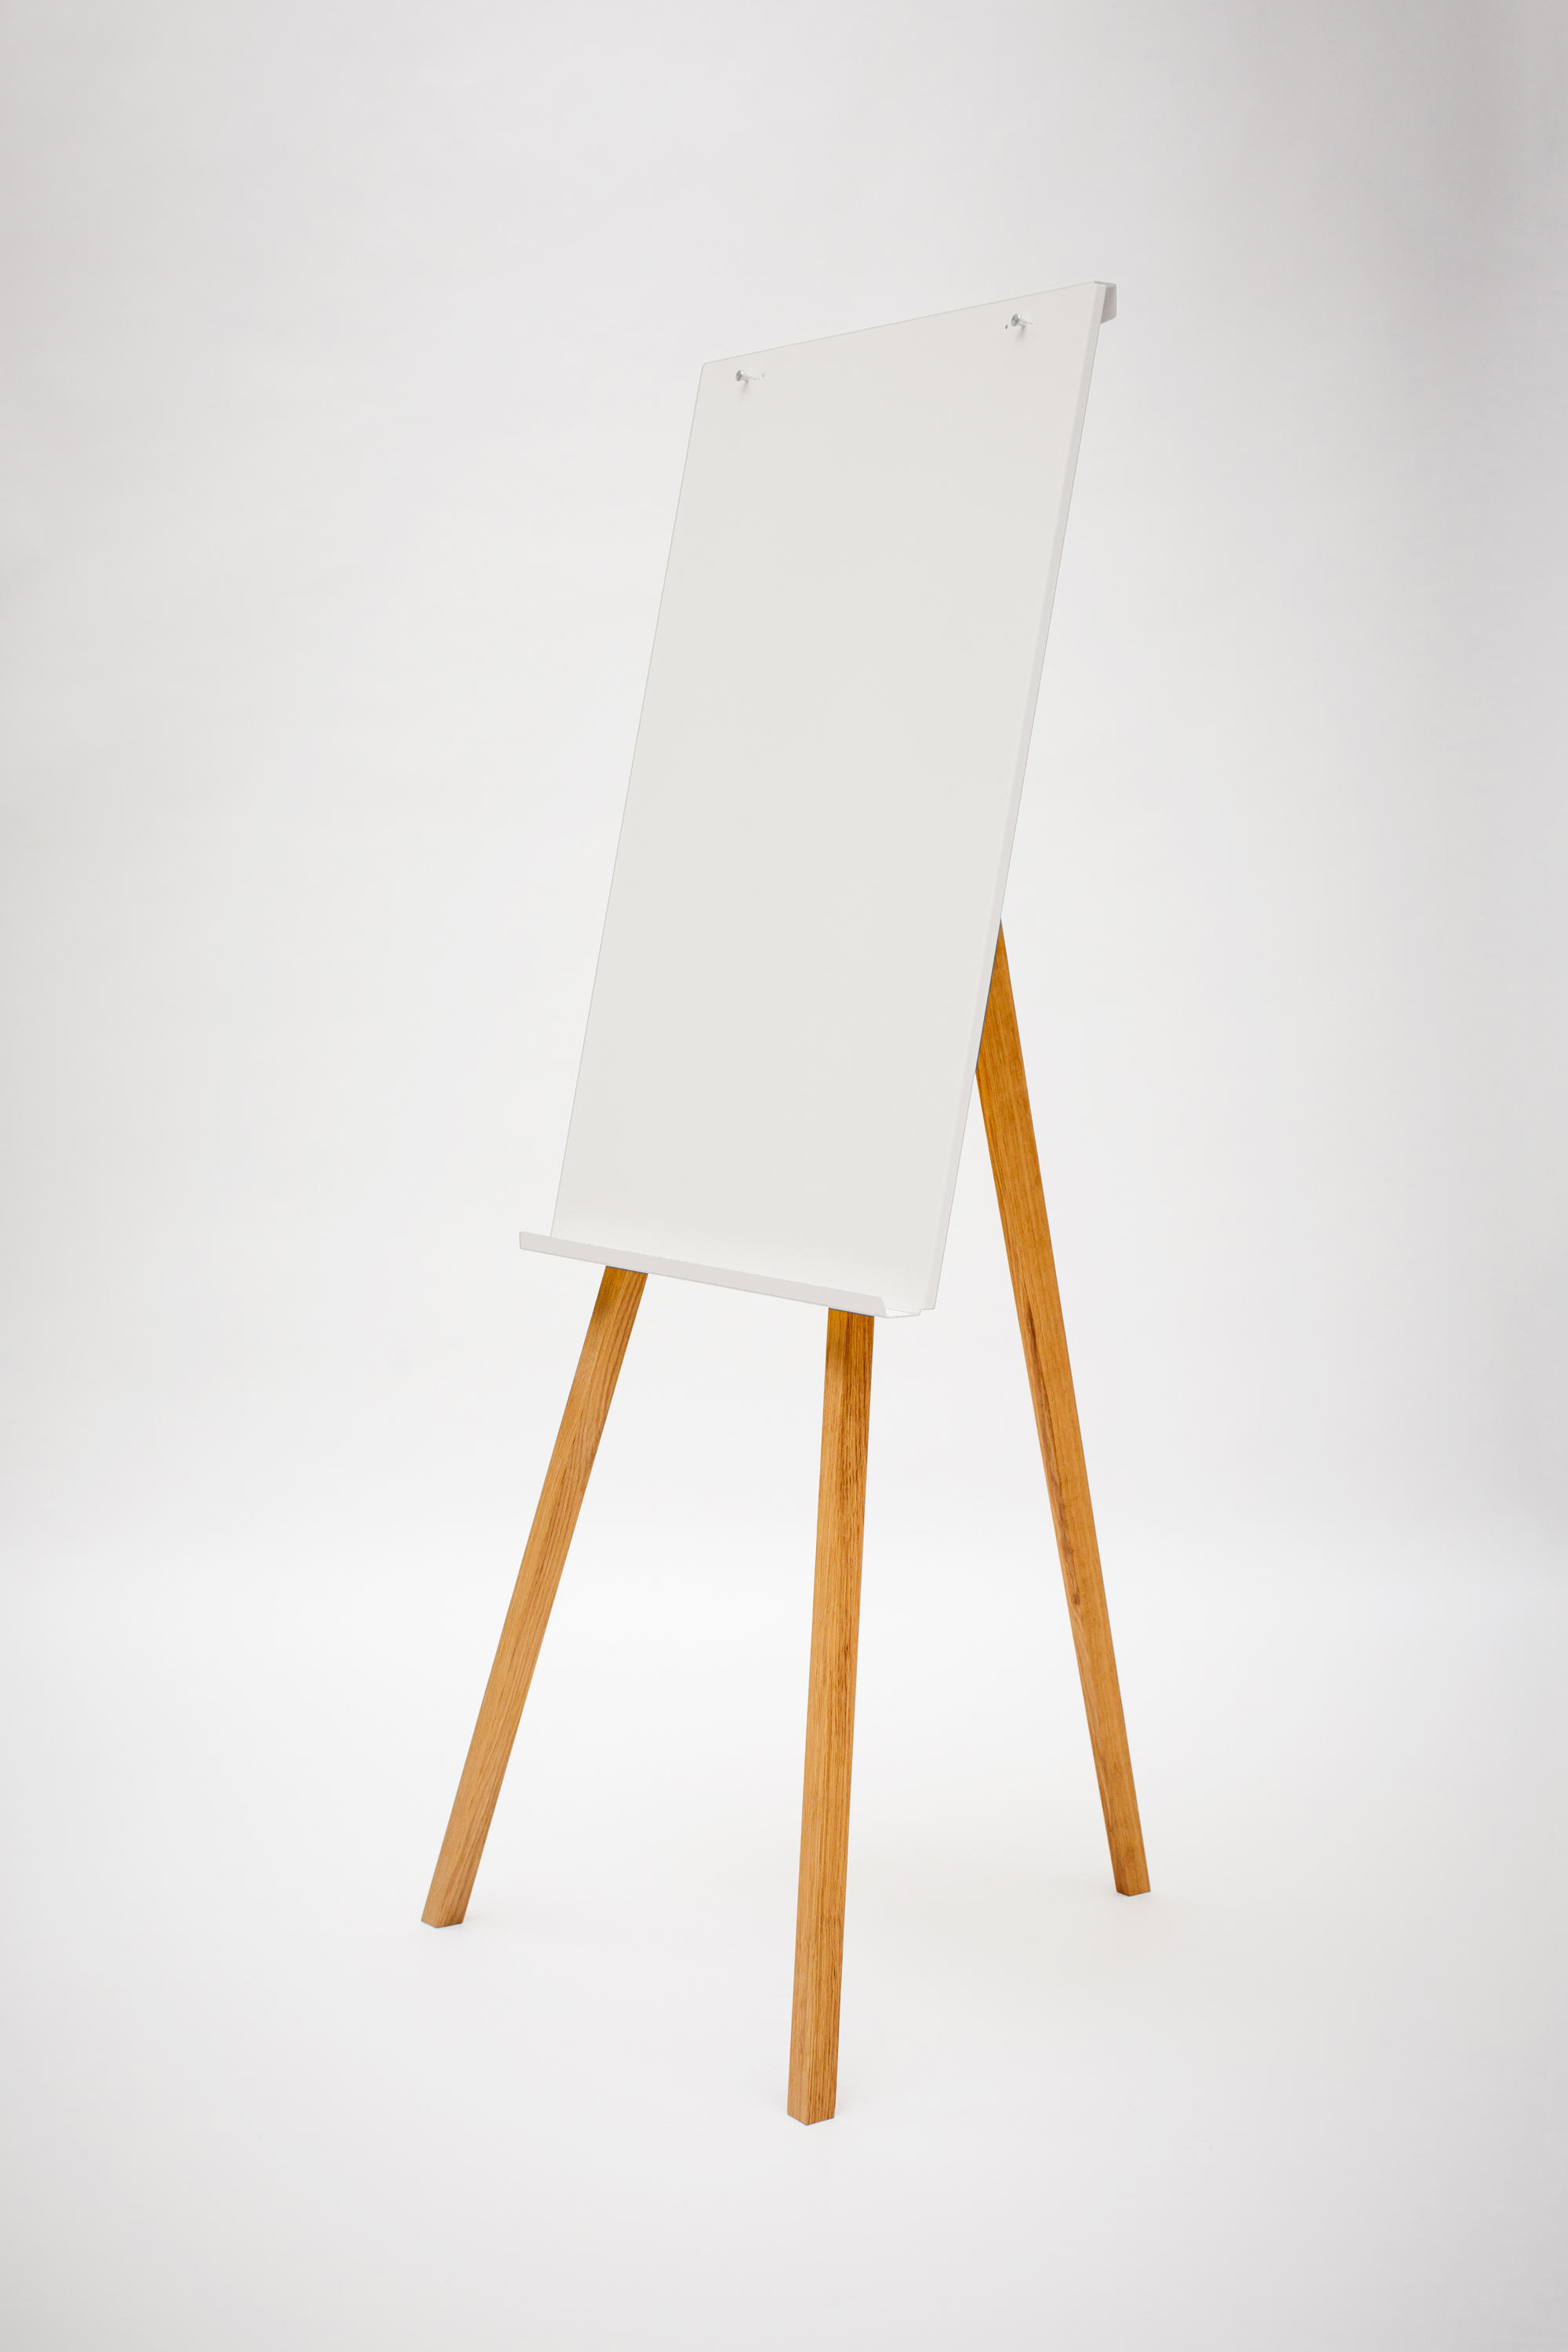 Flipchart Charter White Boards From Roomours